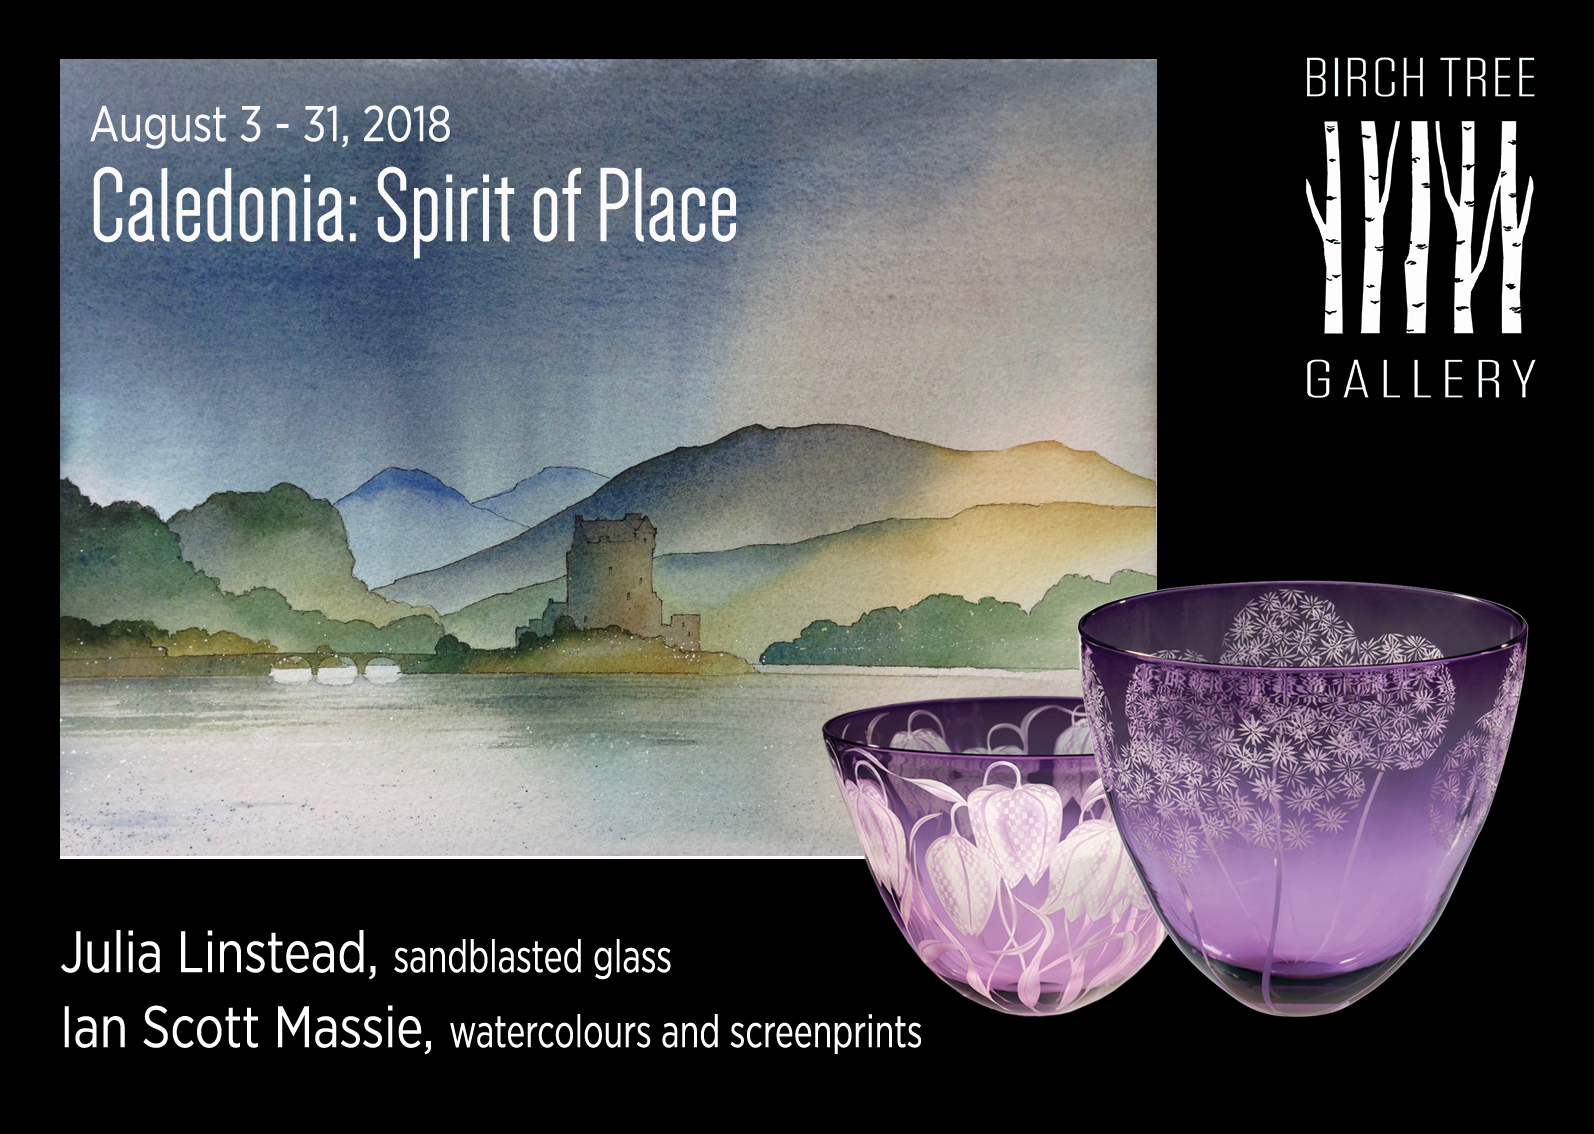 Exhibition 'Caledonia: Spirit of Place'